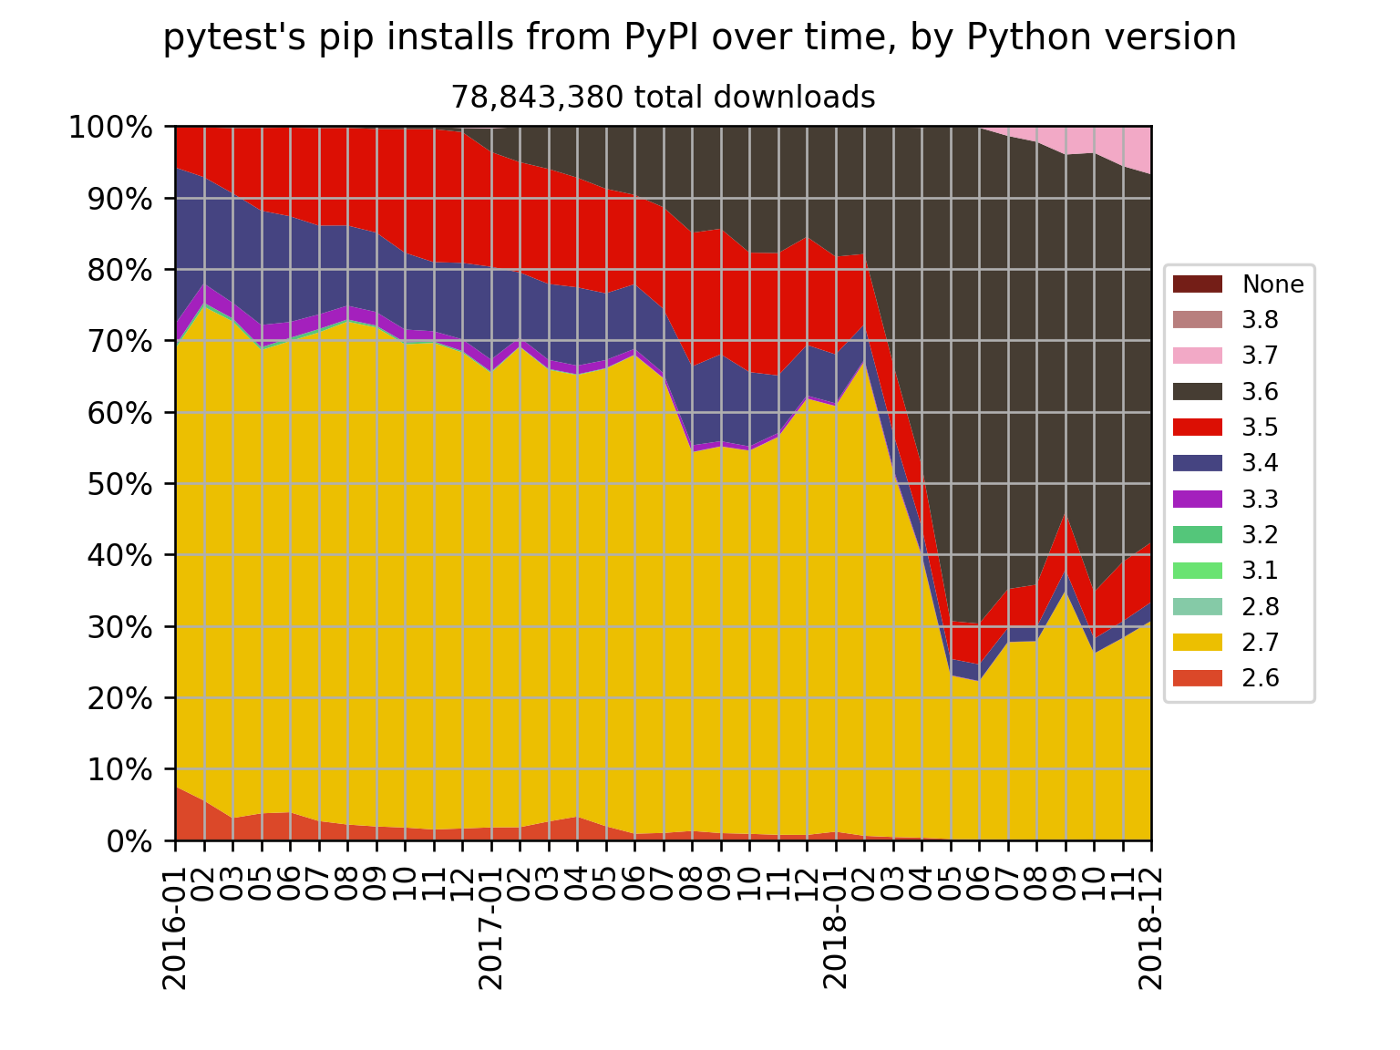 deprecate python 2 7 and 3 4 support · Issue #4627 · pytest